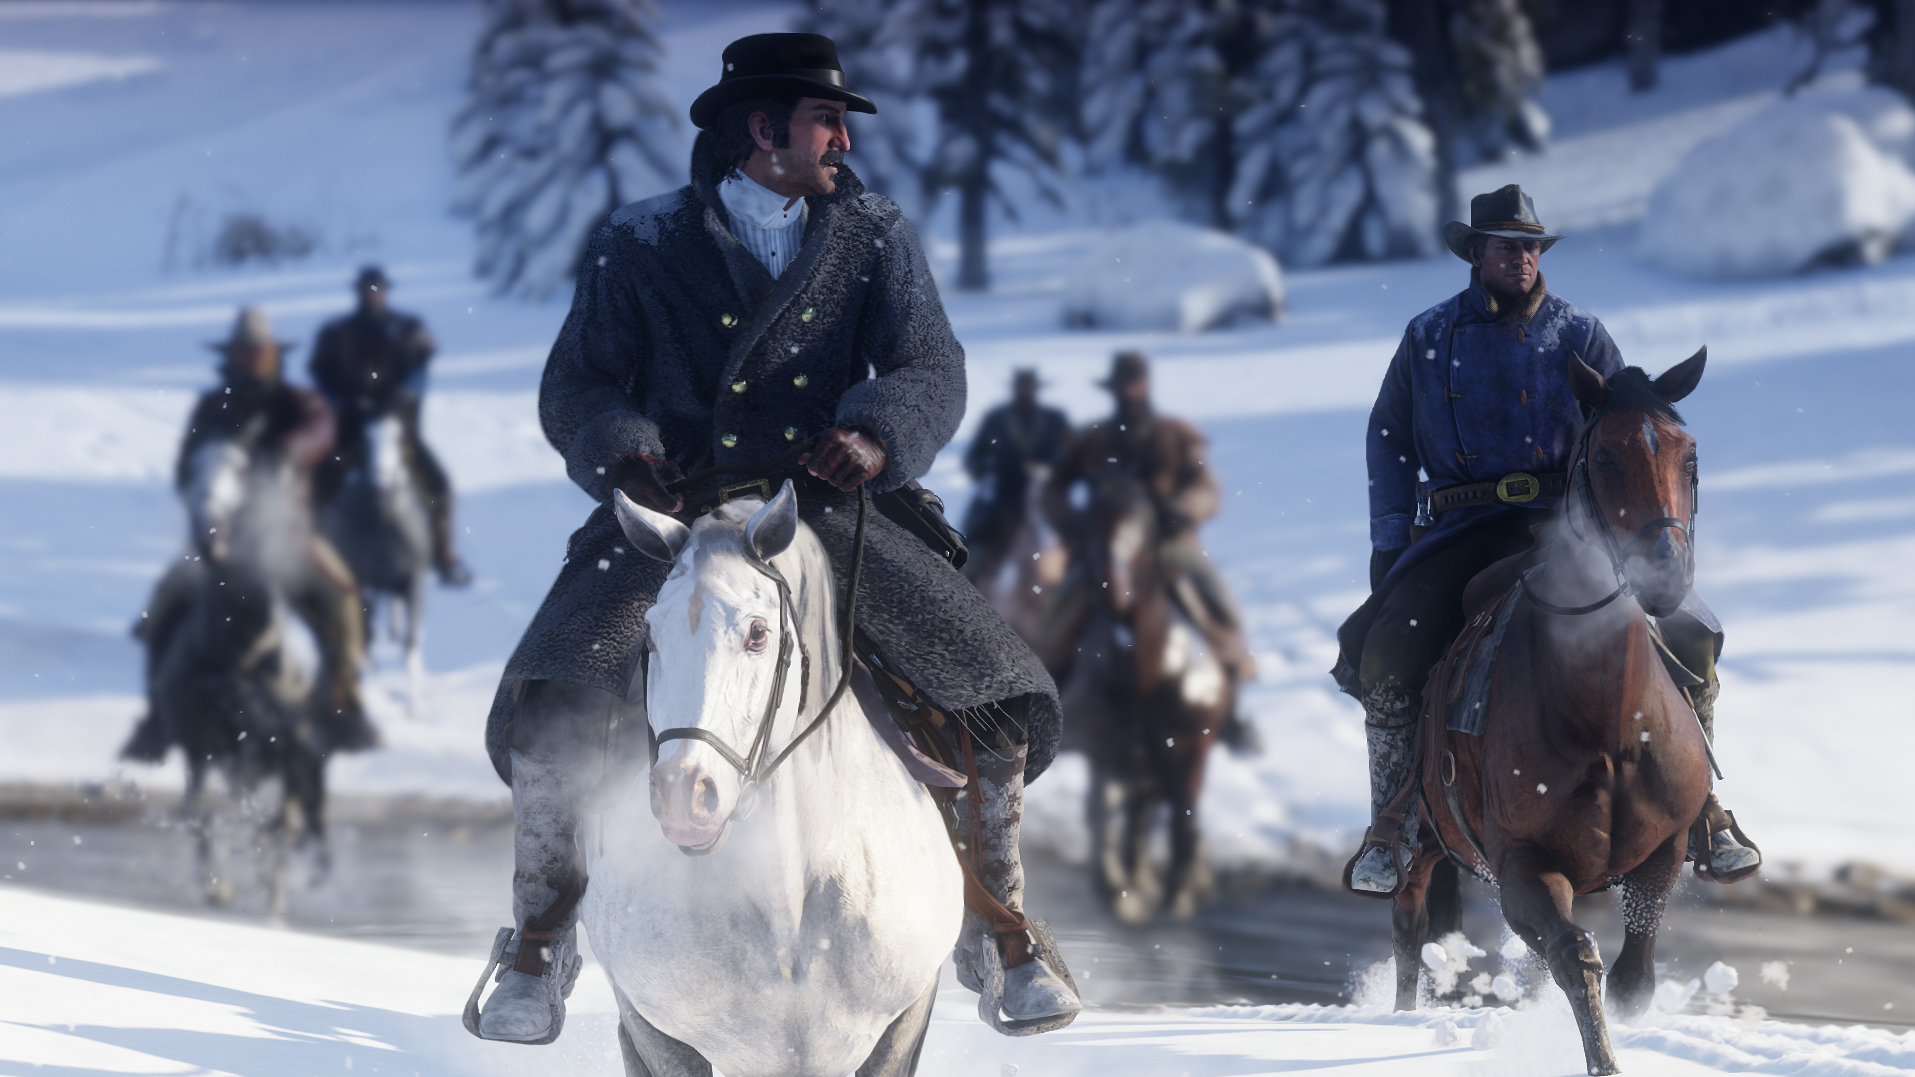 Red Dead Redemption 2 is being praised for its incredible graphics. Credit: Rockstar Games